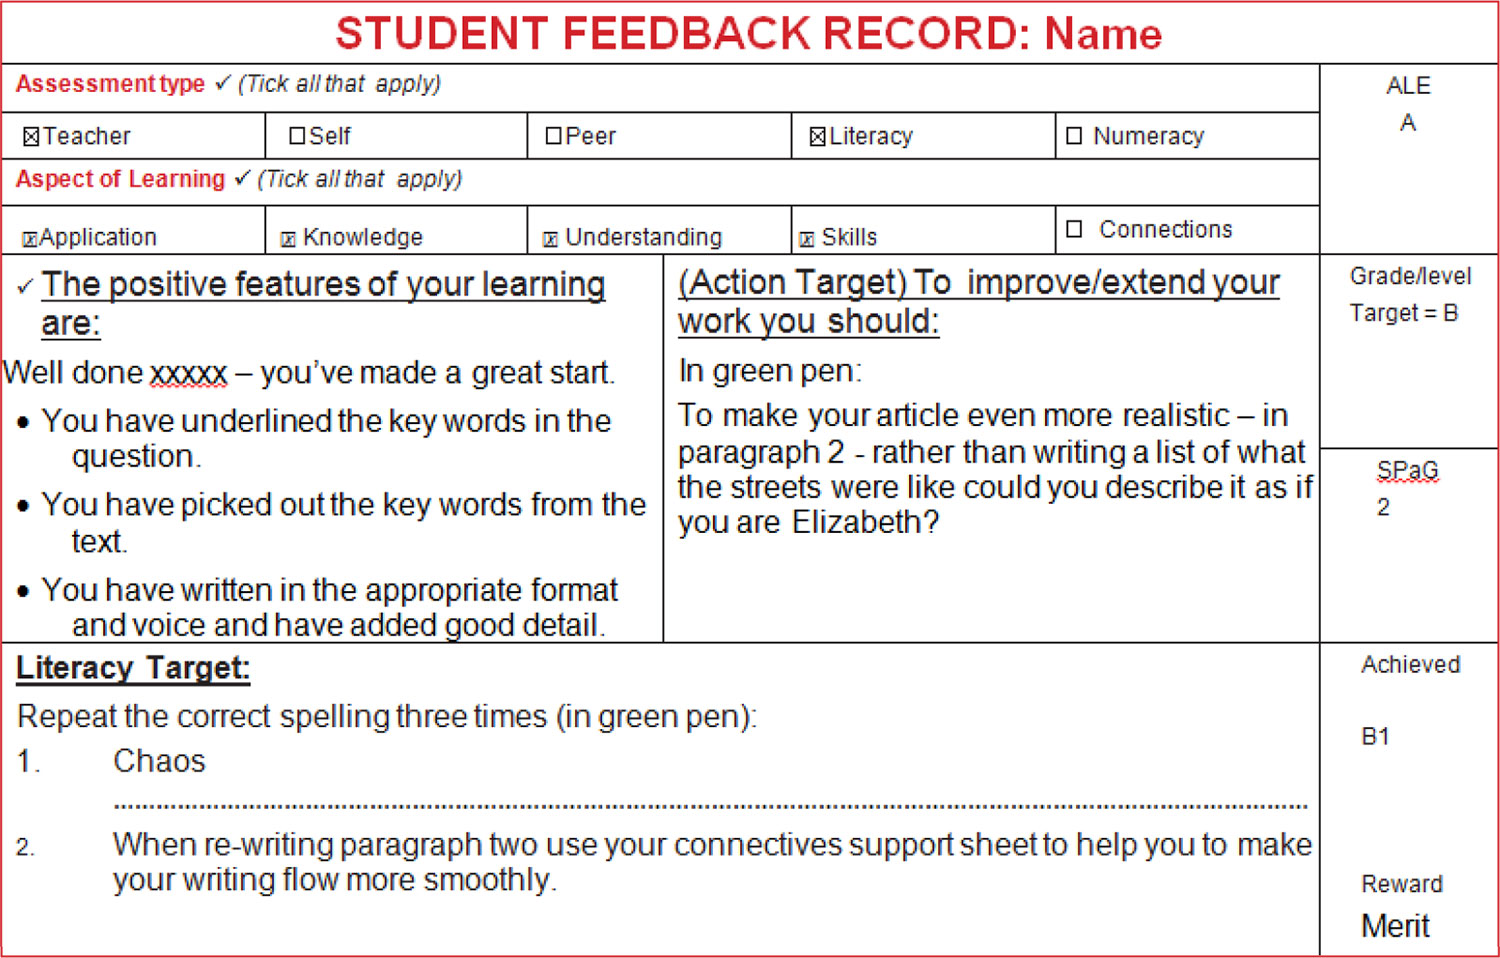 Student Feedback Record